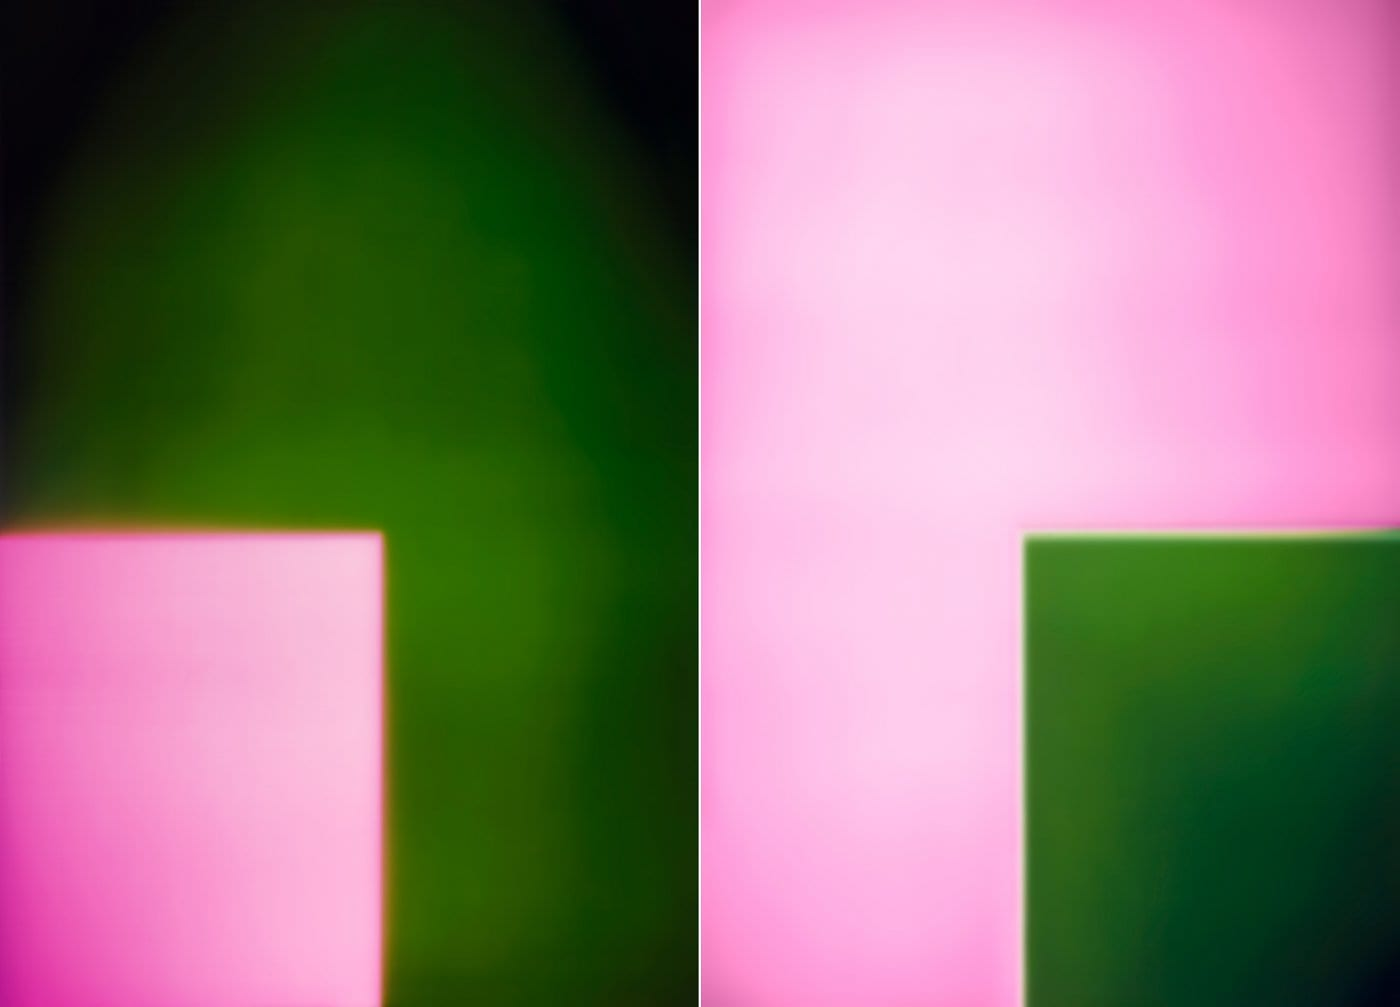 Garry Fabian Miller artwork abstract pink and green squares camera less artwork